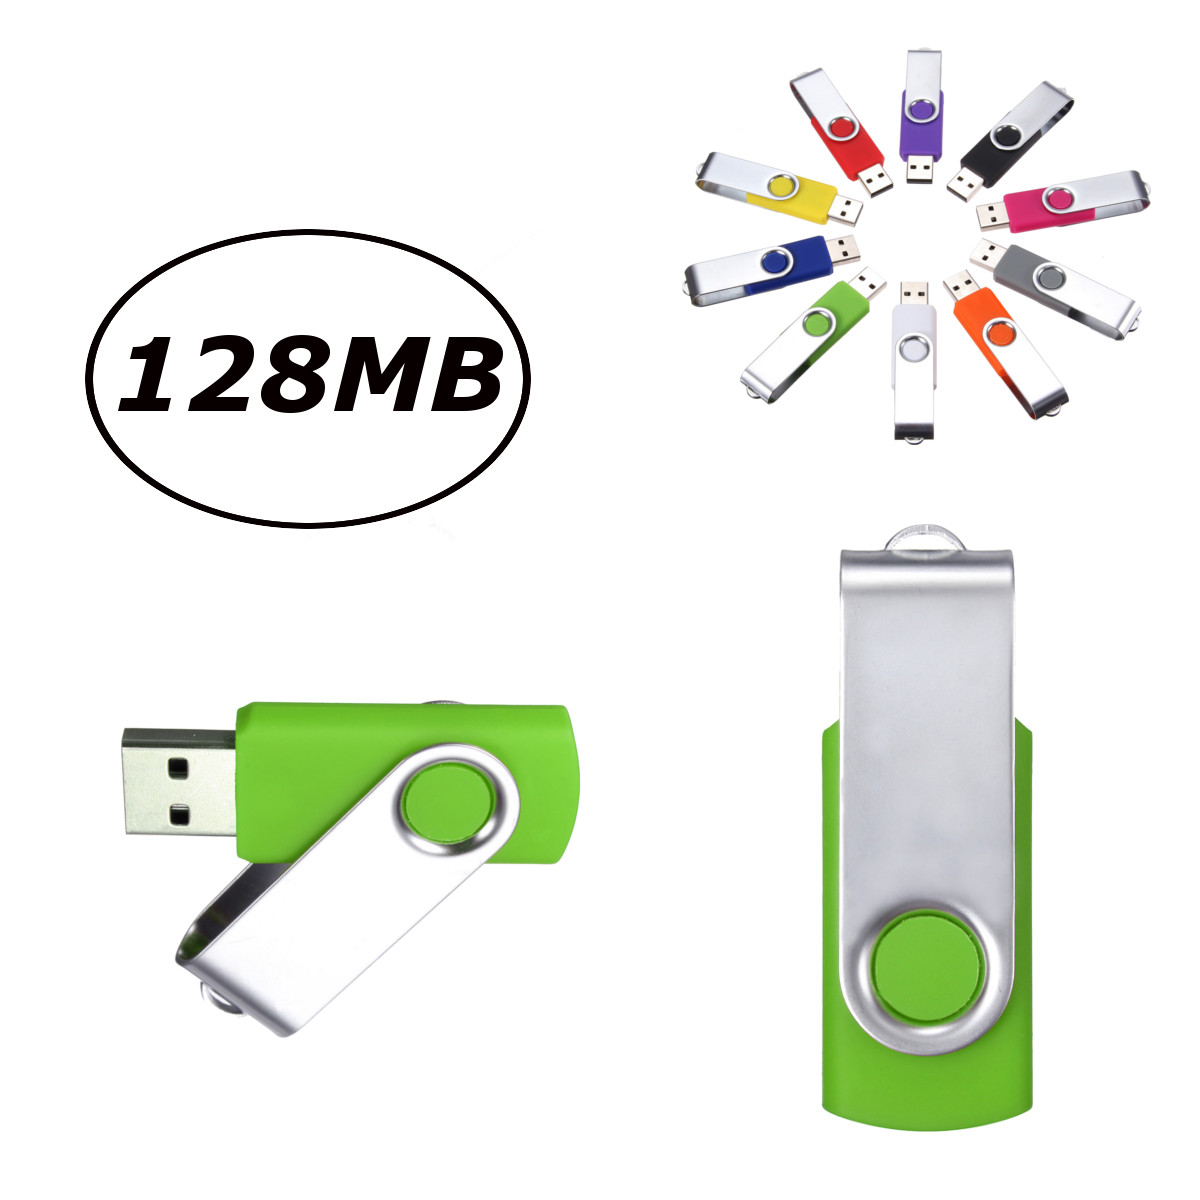 Foldable 128MB USB 2.0 Flash Memory Stick Pen Drive Storage Thumb USB 2.0 & USB 1.1 U Disk 15MB/sec & Write: 6 MB/sec